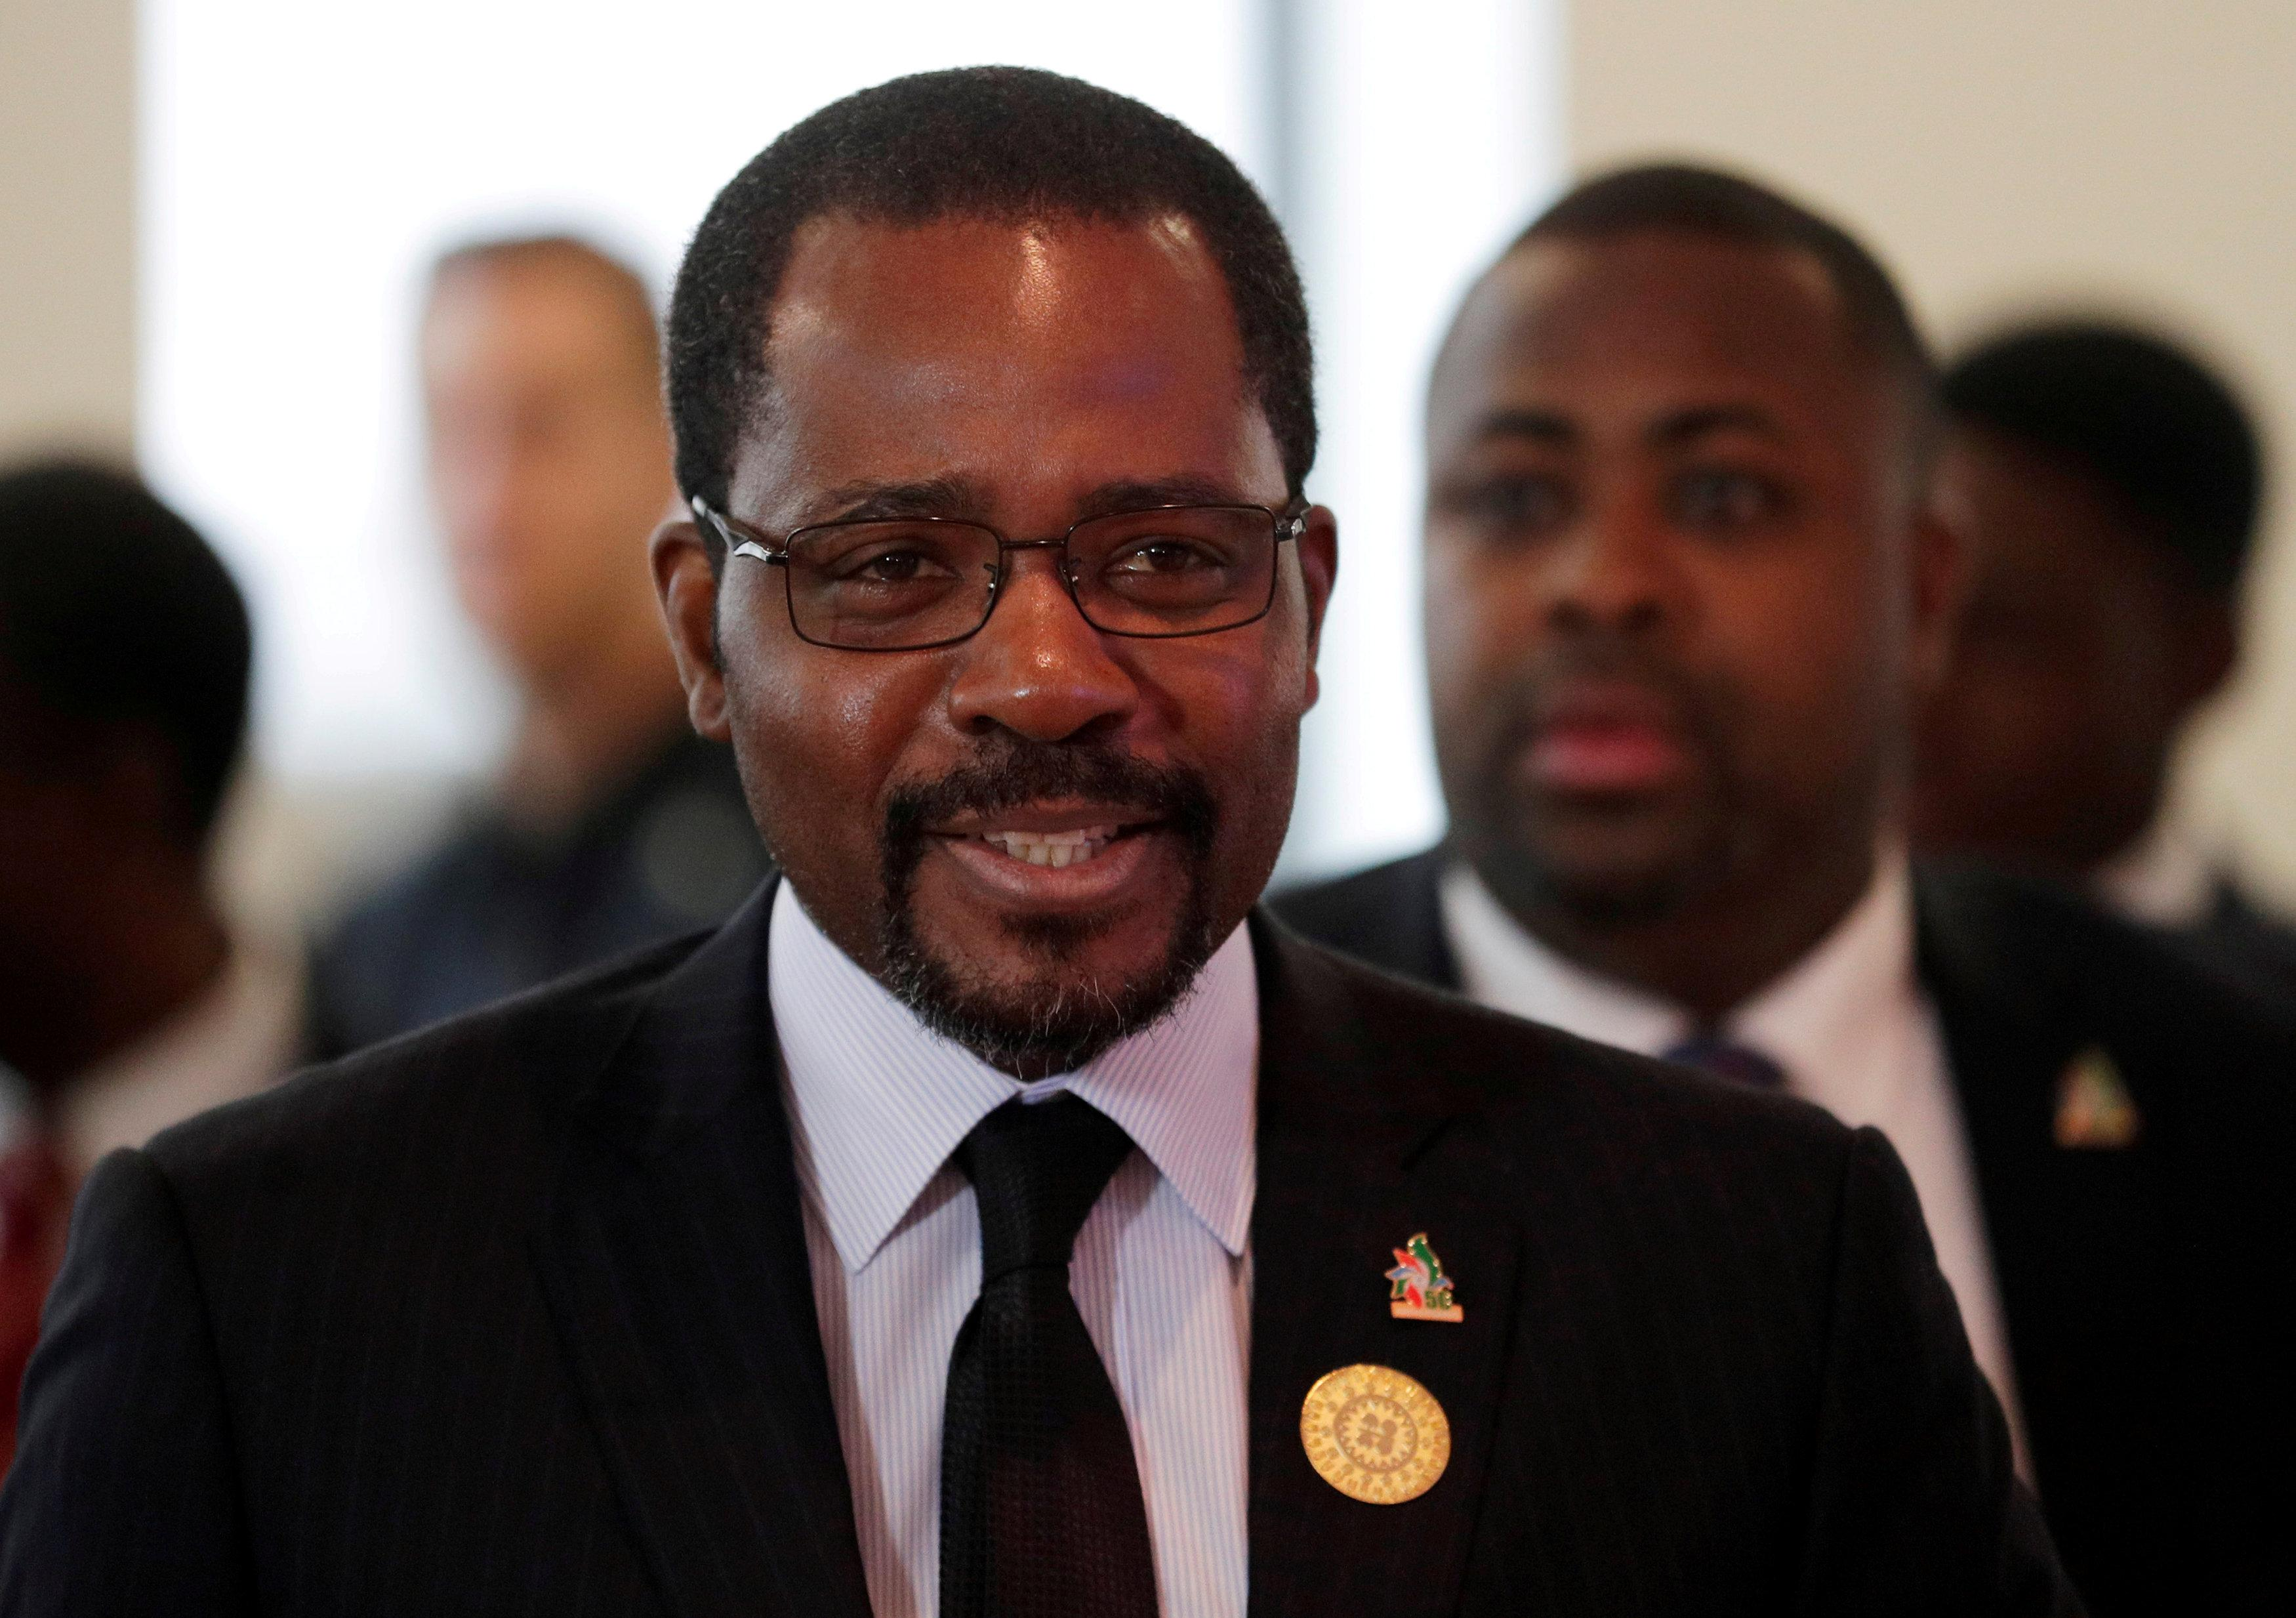 Equatorial Guinea's Oil Minister Gabriel Mbaga Obiang, June 22, 2018. Heinz-Peter Bader